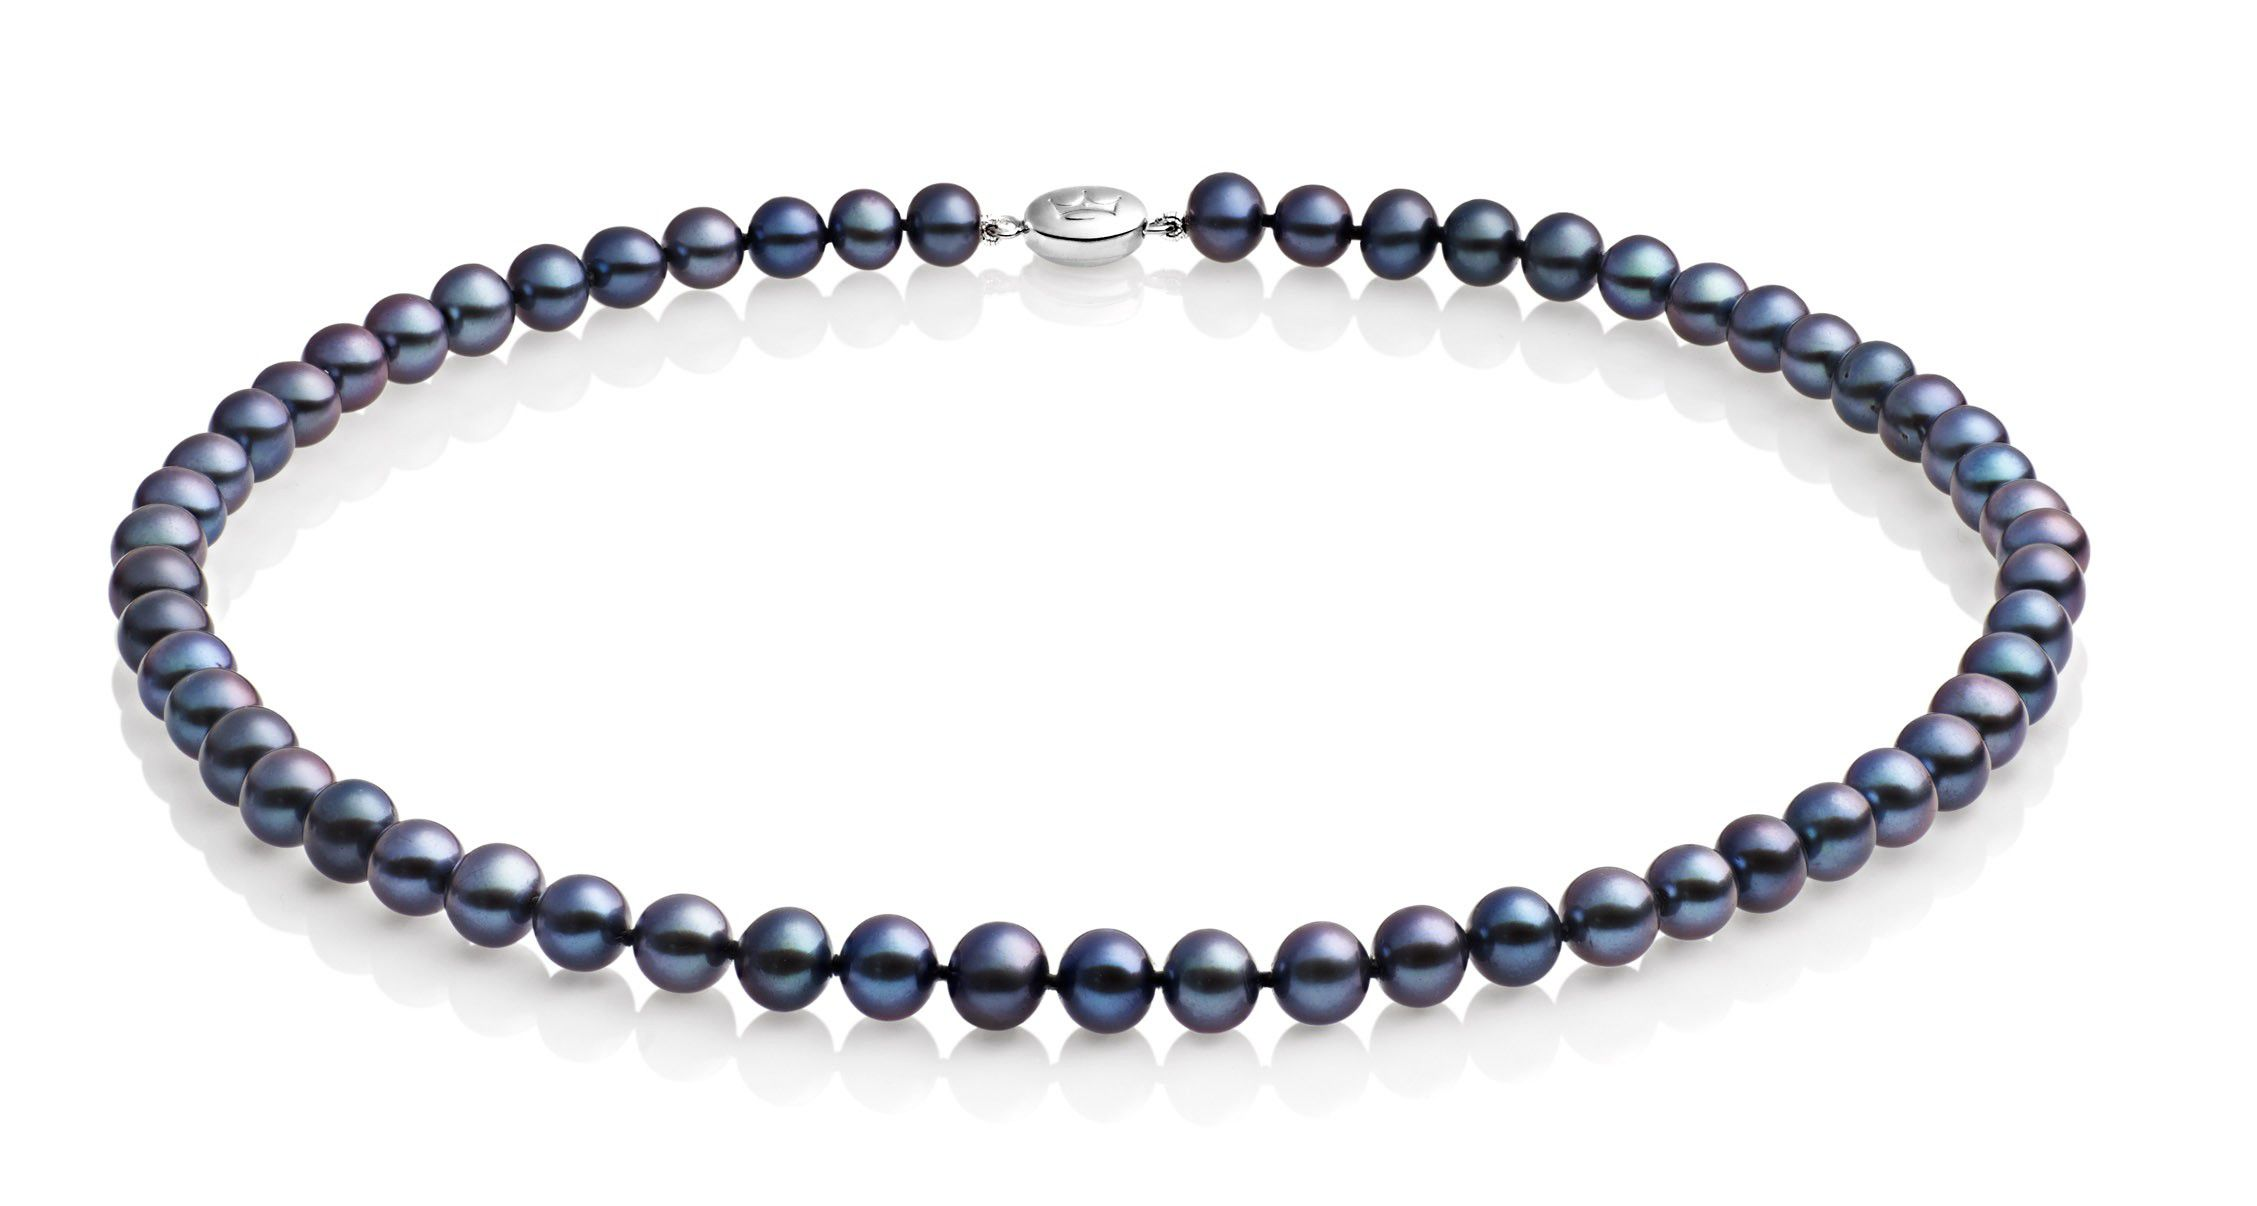 jersey pearl black medium pearl necklace